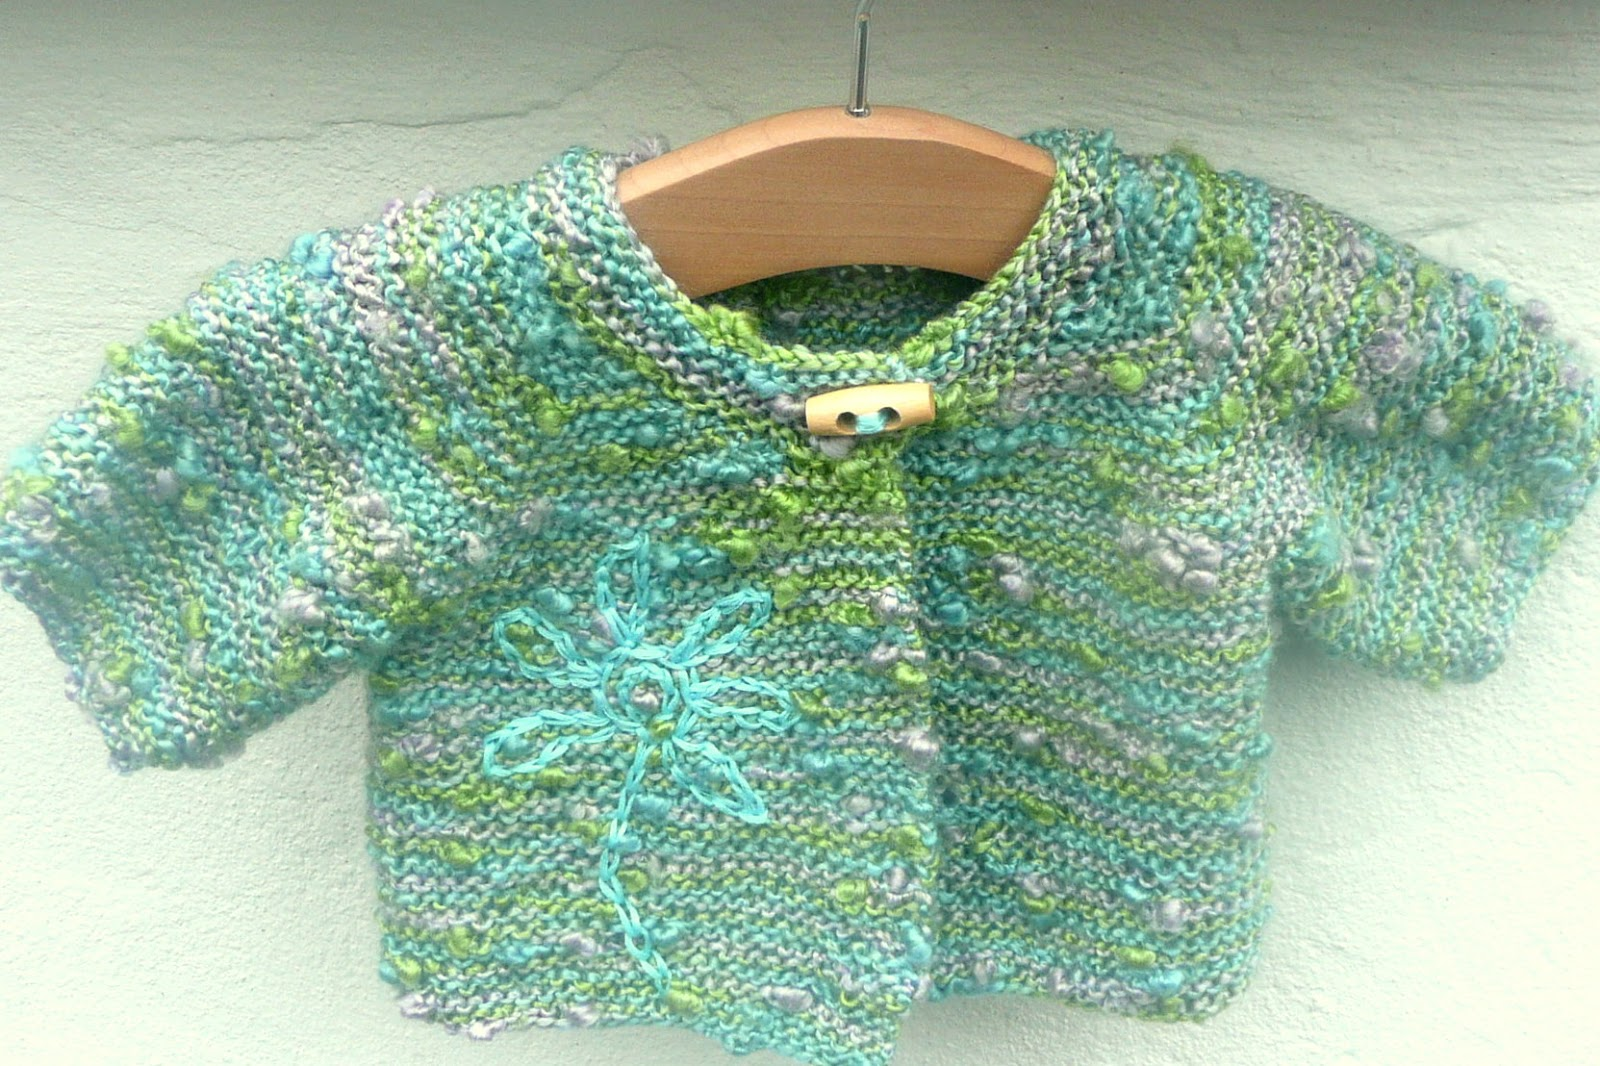 Knitting Pattern Baby Jacket : Ceradka Crafts: Simple Seamless Baby Jacket - a free knitting pattern